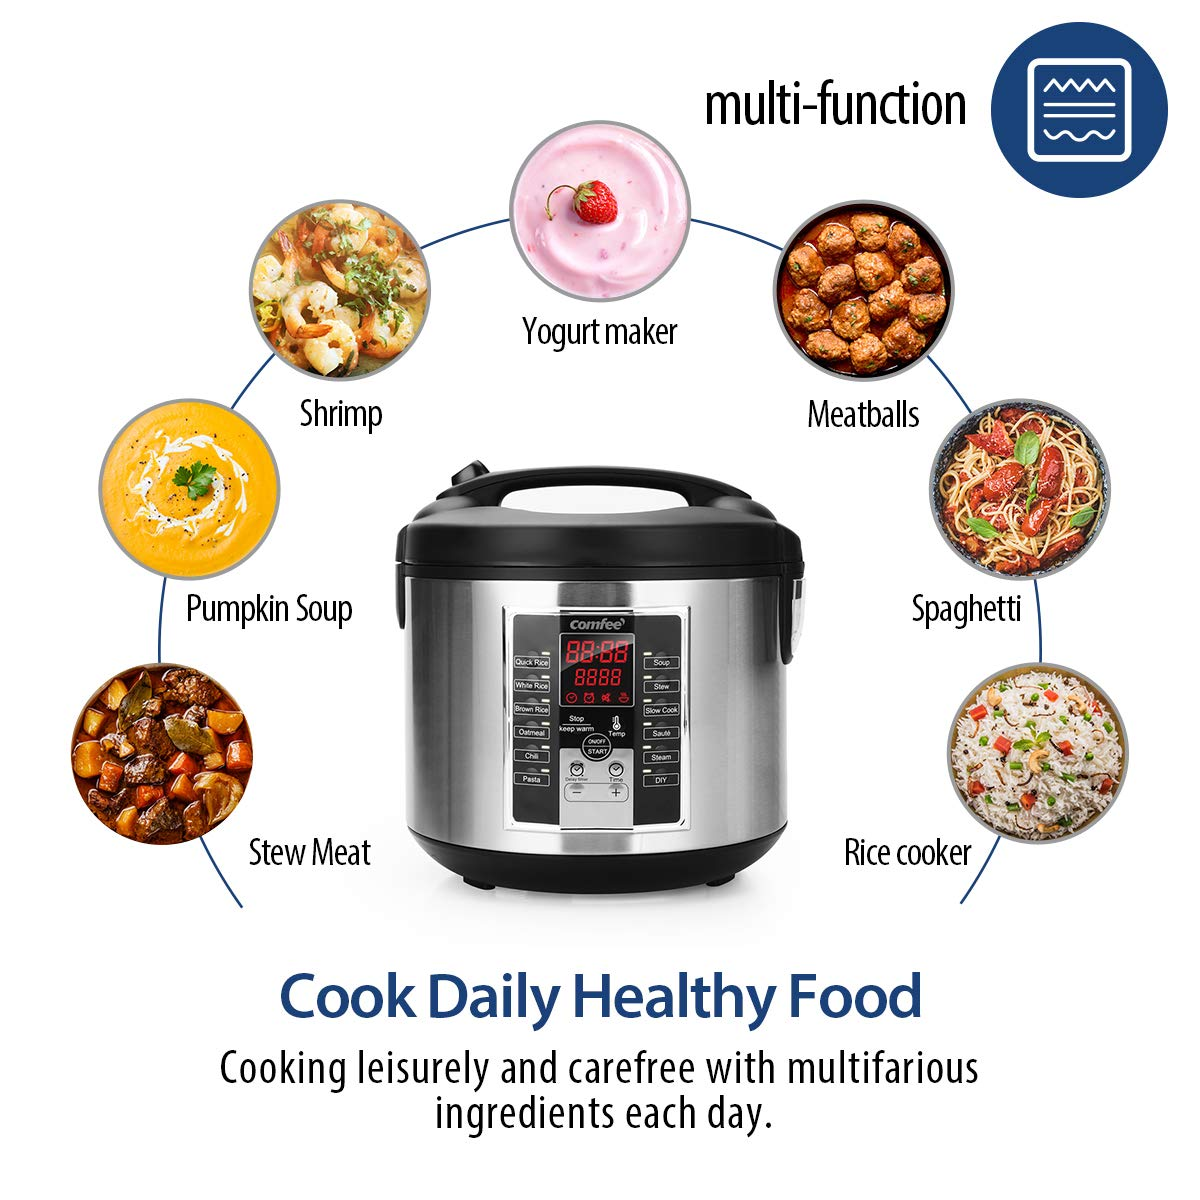 COMFEE' Rice Cooker, Slow Cooker, Steamer, Stewpot, Saute All in One (12 Digital Cooking Programs) Multi Cooker (5.2Qt ) Large Capacity, 24 Hours Preset & Instant Keep Warm